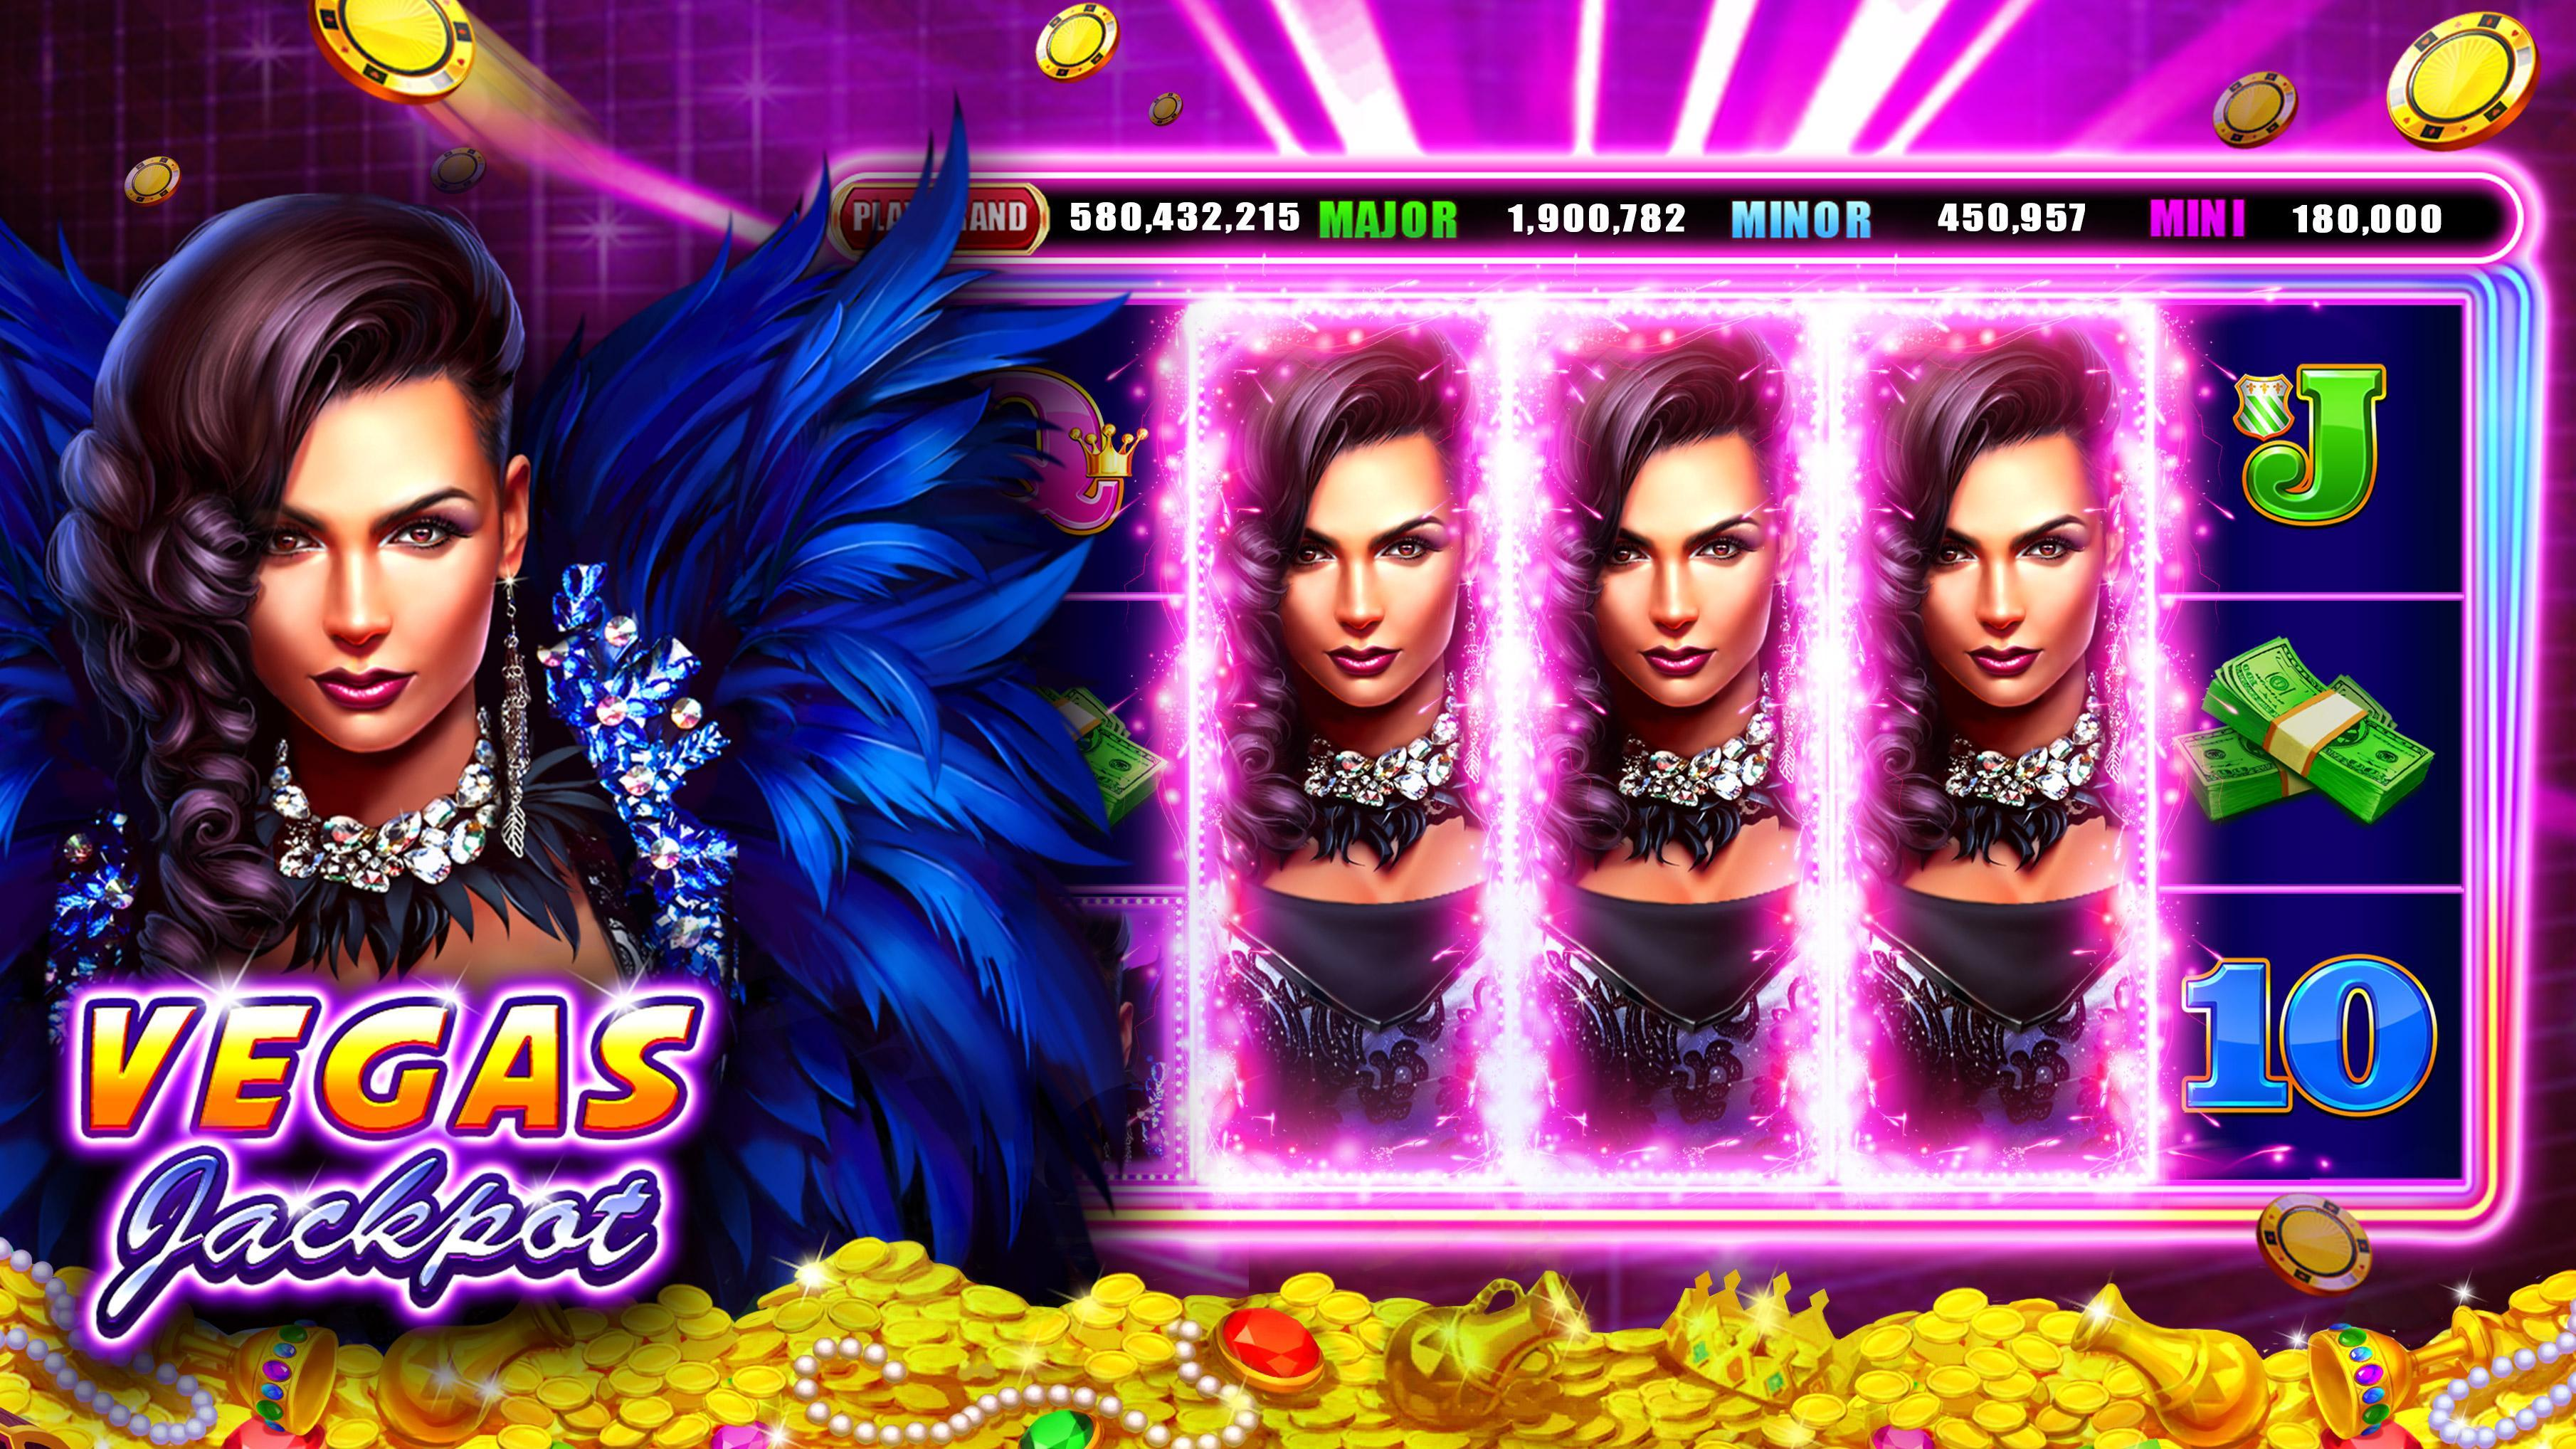 Vegas Friends - Casino Slots for Free 1.0.012 Screenshot 2